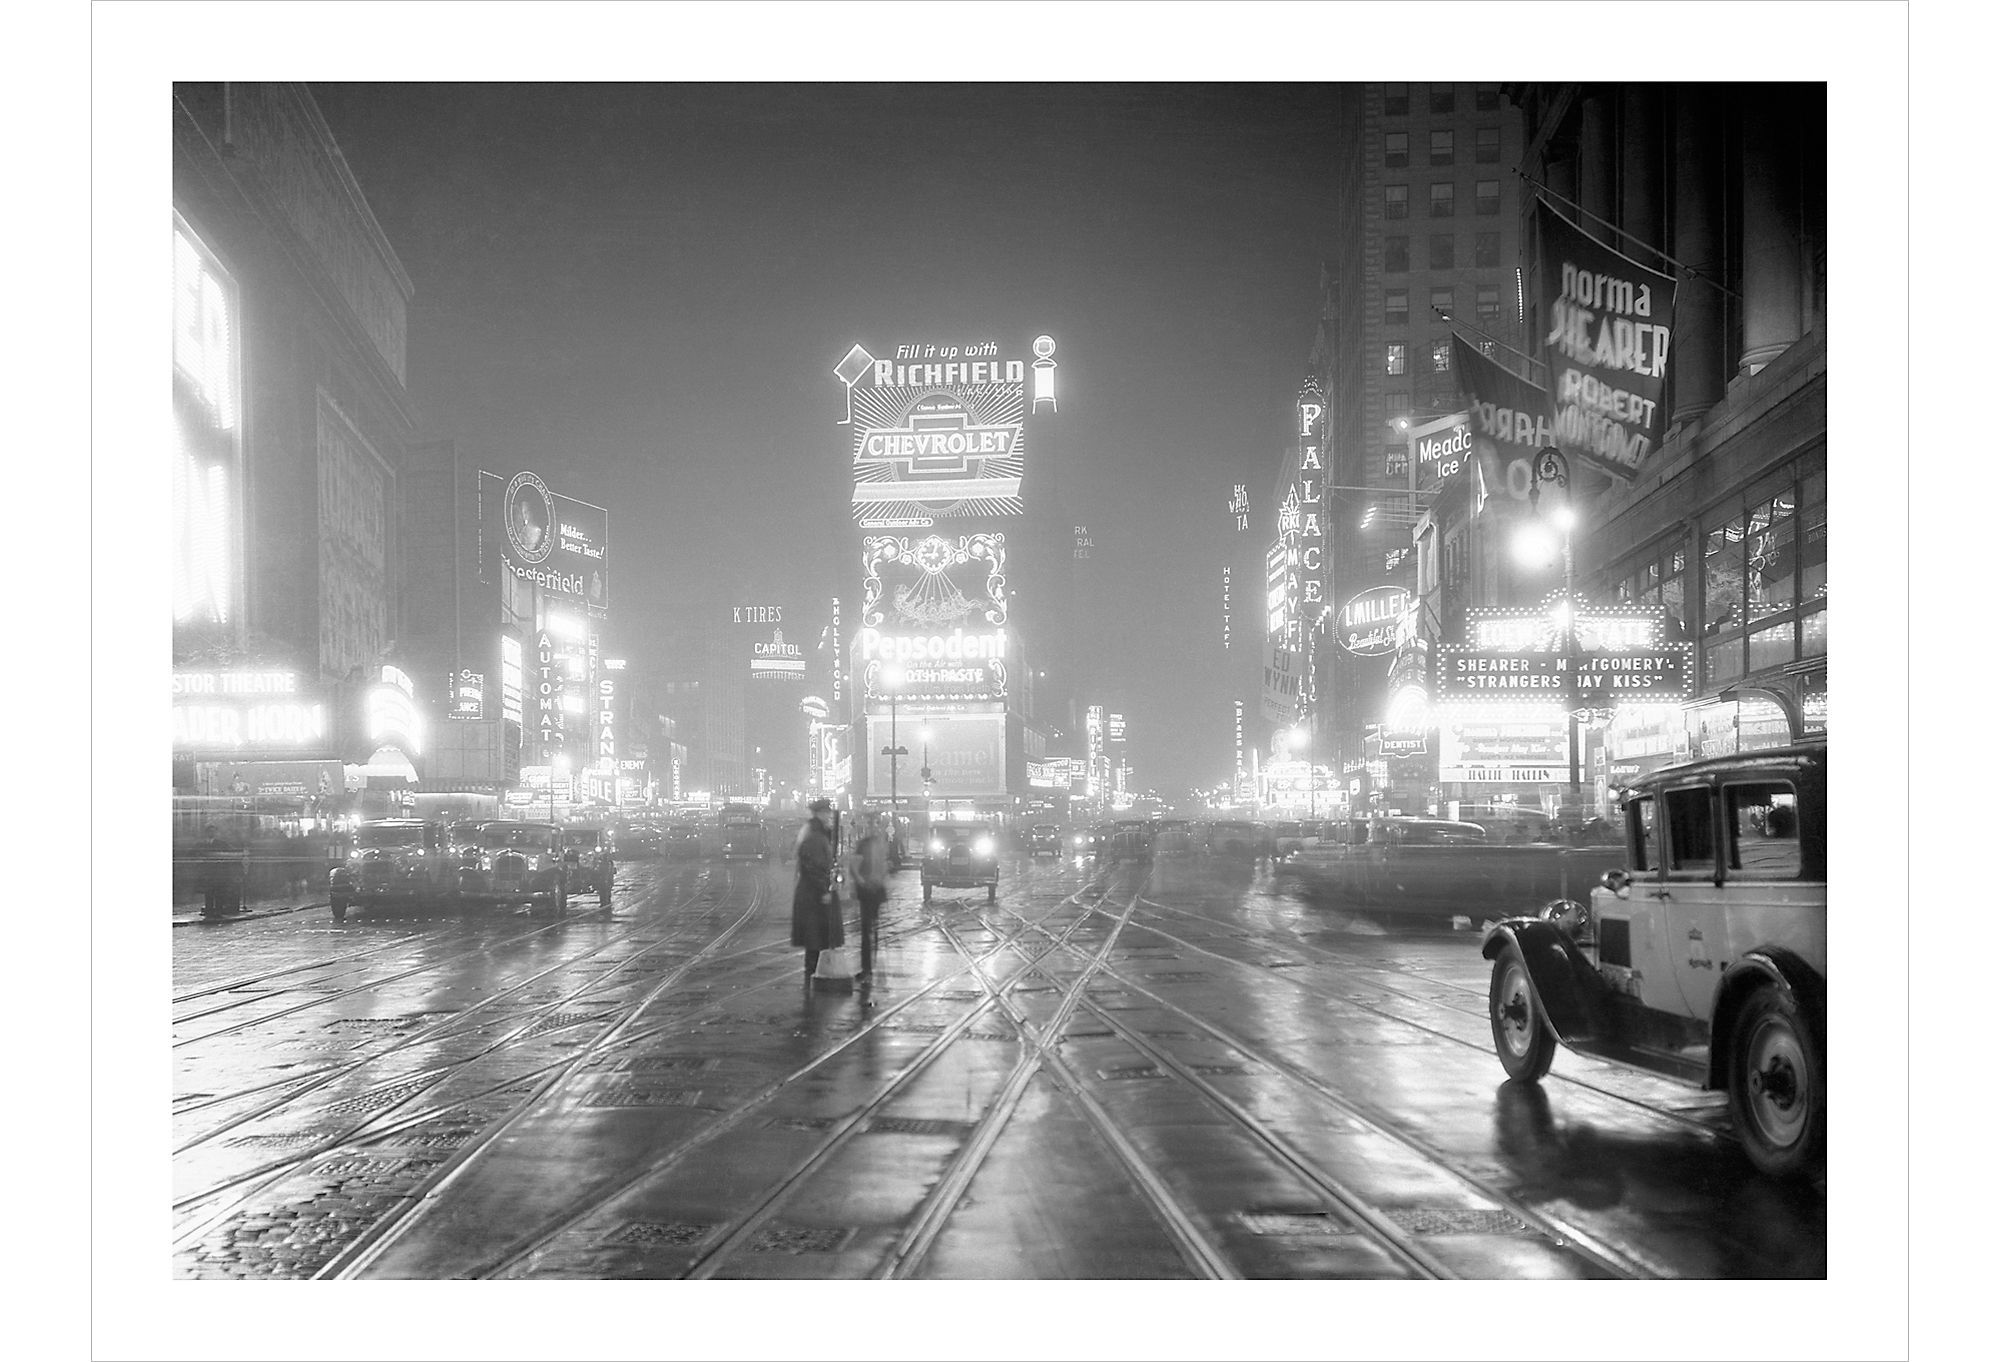 Times Square, New York in 1931 by Philip Gendreau